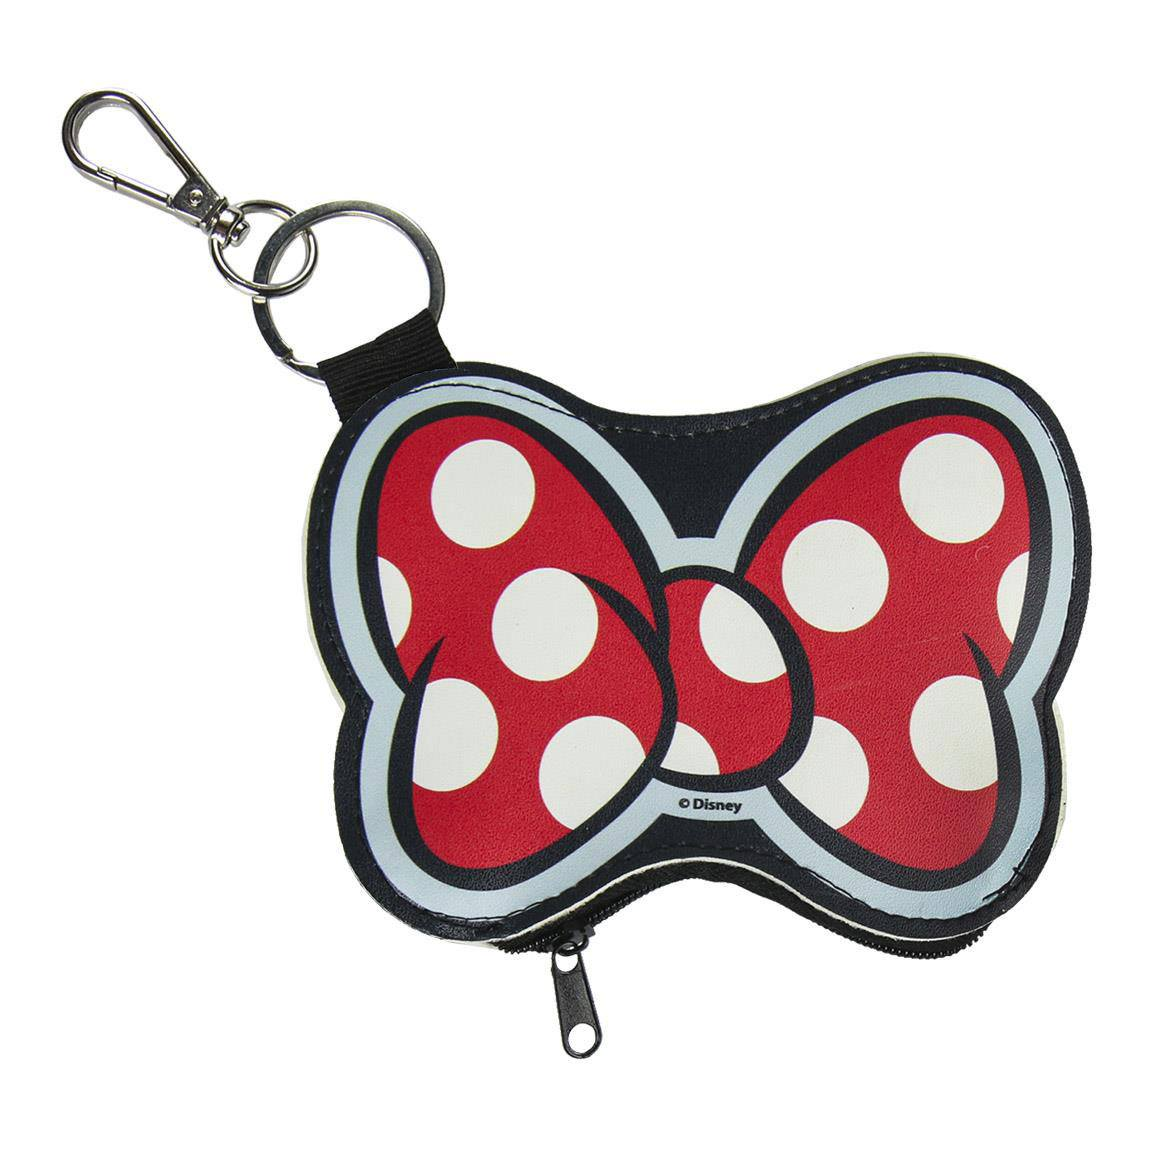 Disney porte-monnaie Mini Minnie Mouse Bow